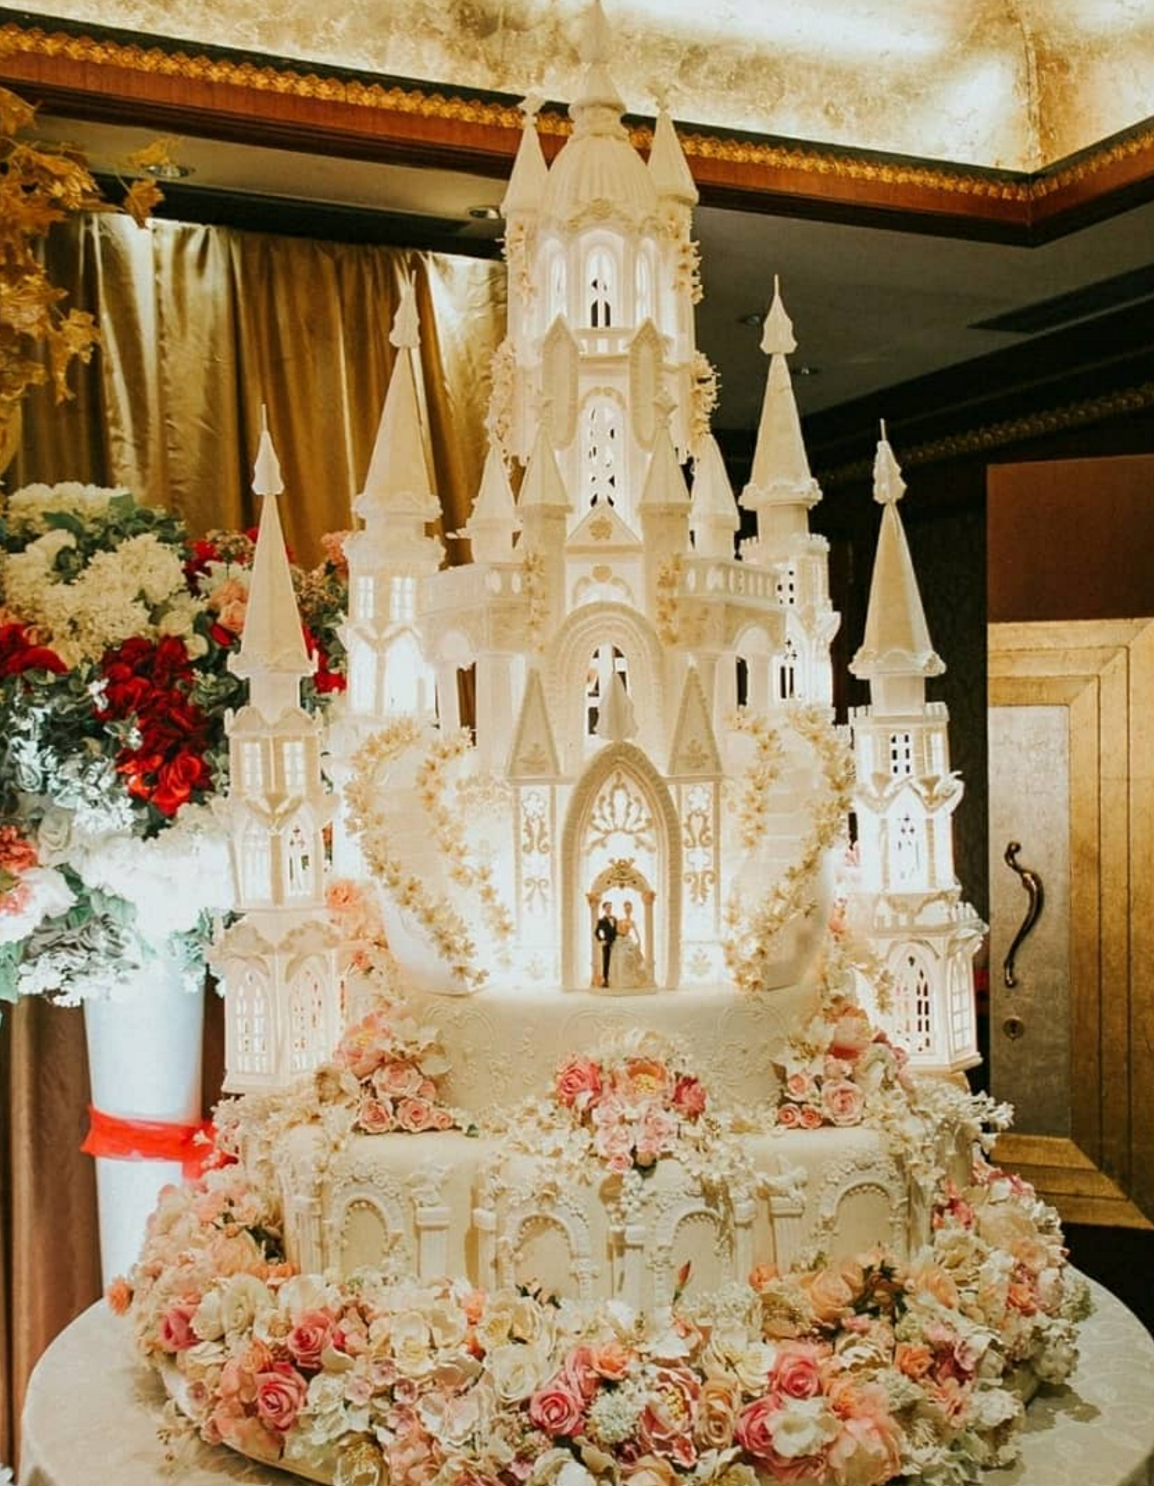 layered and intricate wedding cake with detailed flowers